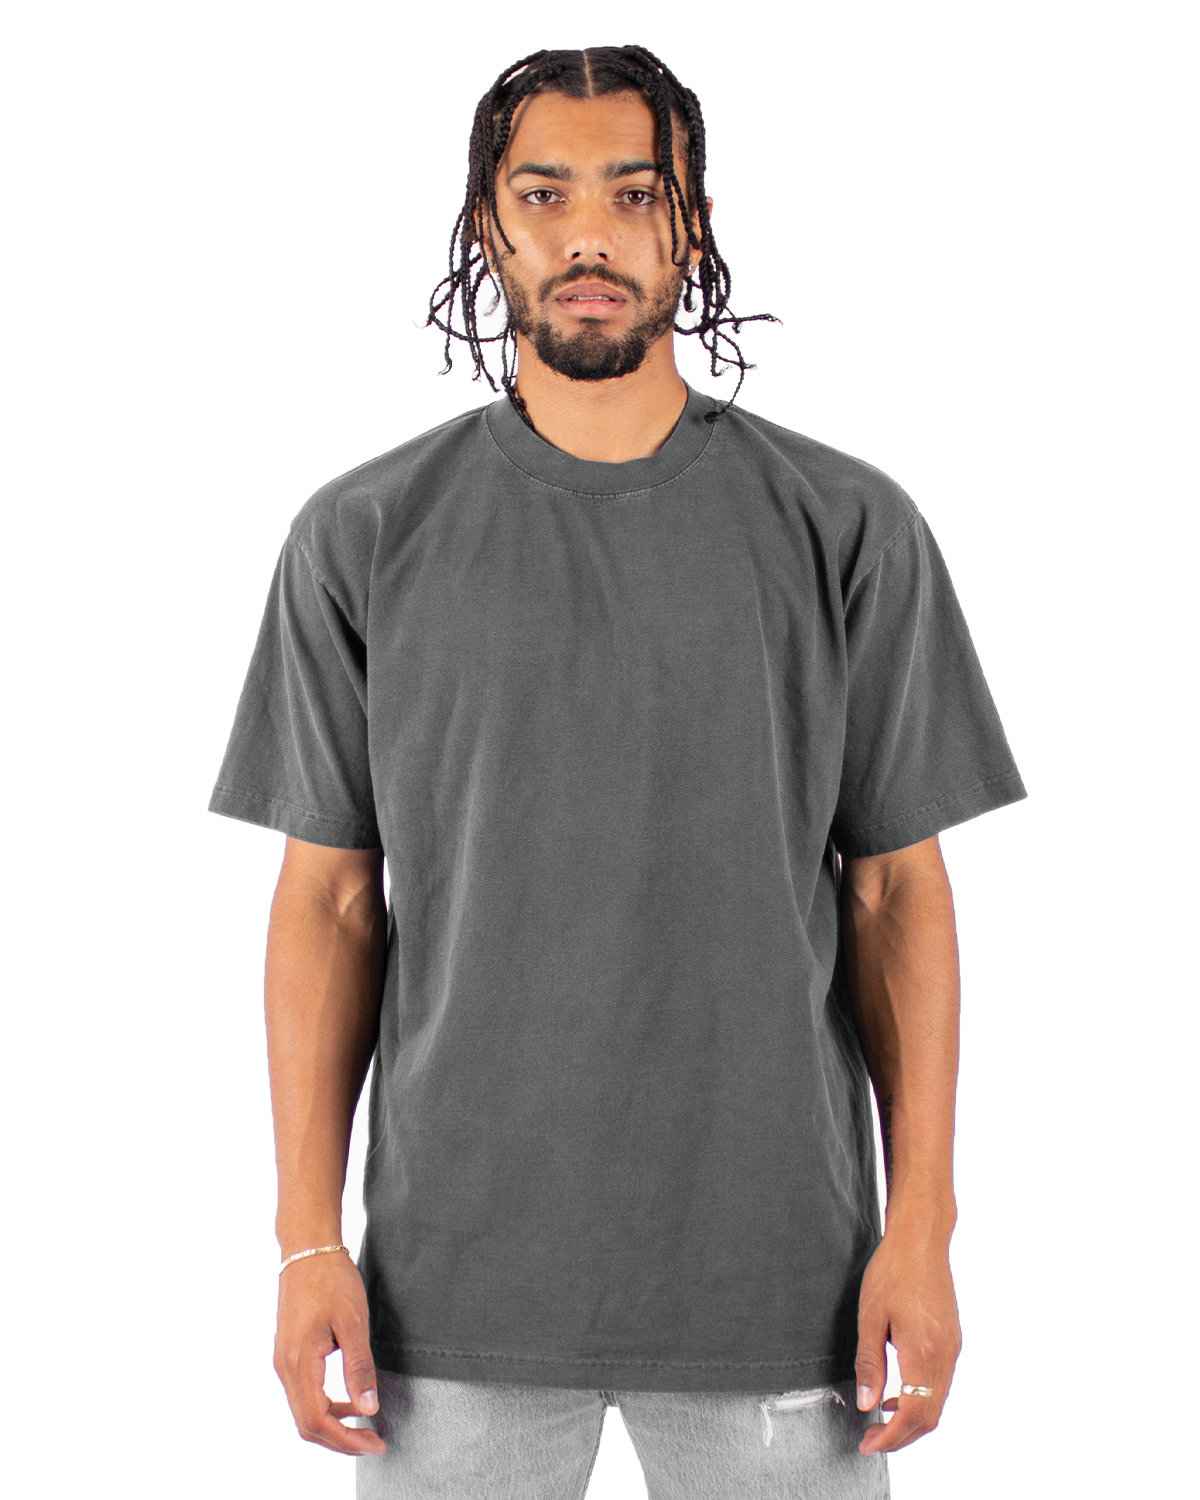 Shaka Wear Drop Ship Garment-Dyed Crewneck T-Shirt SHADOW